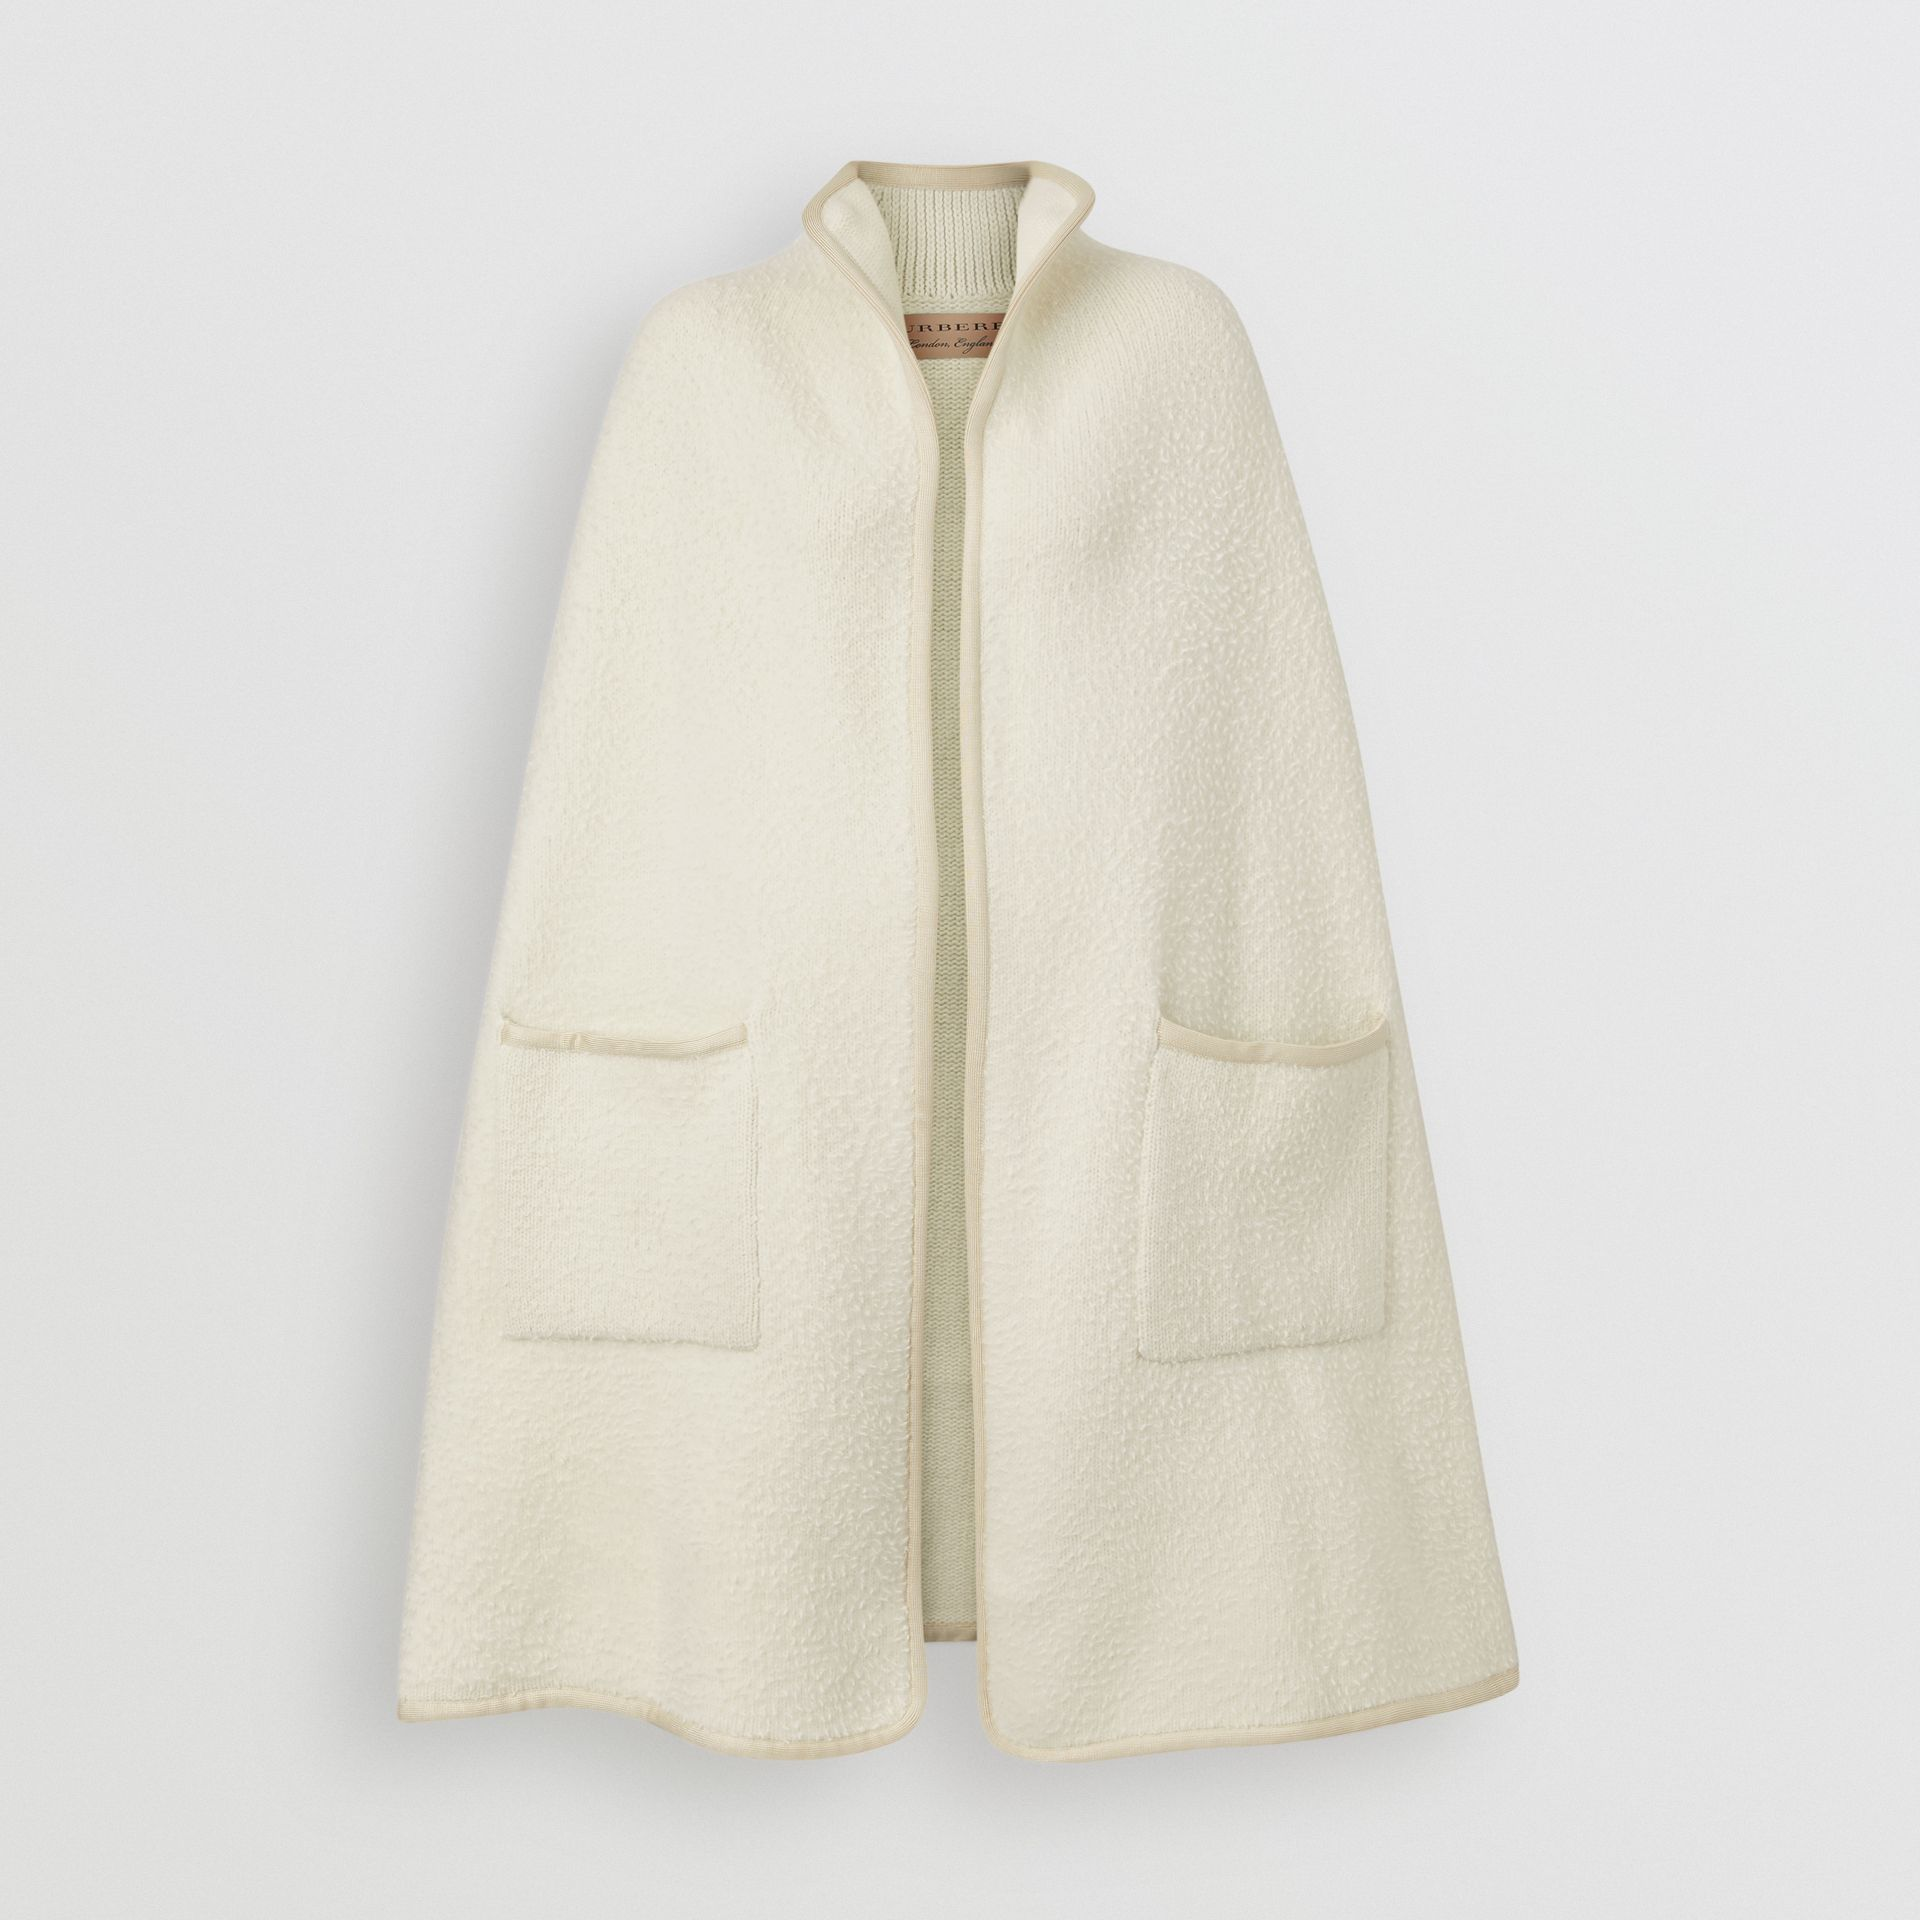 Wool Fleece Cape in Ivory - Women | Burberry Australia - gallery image 3